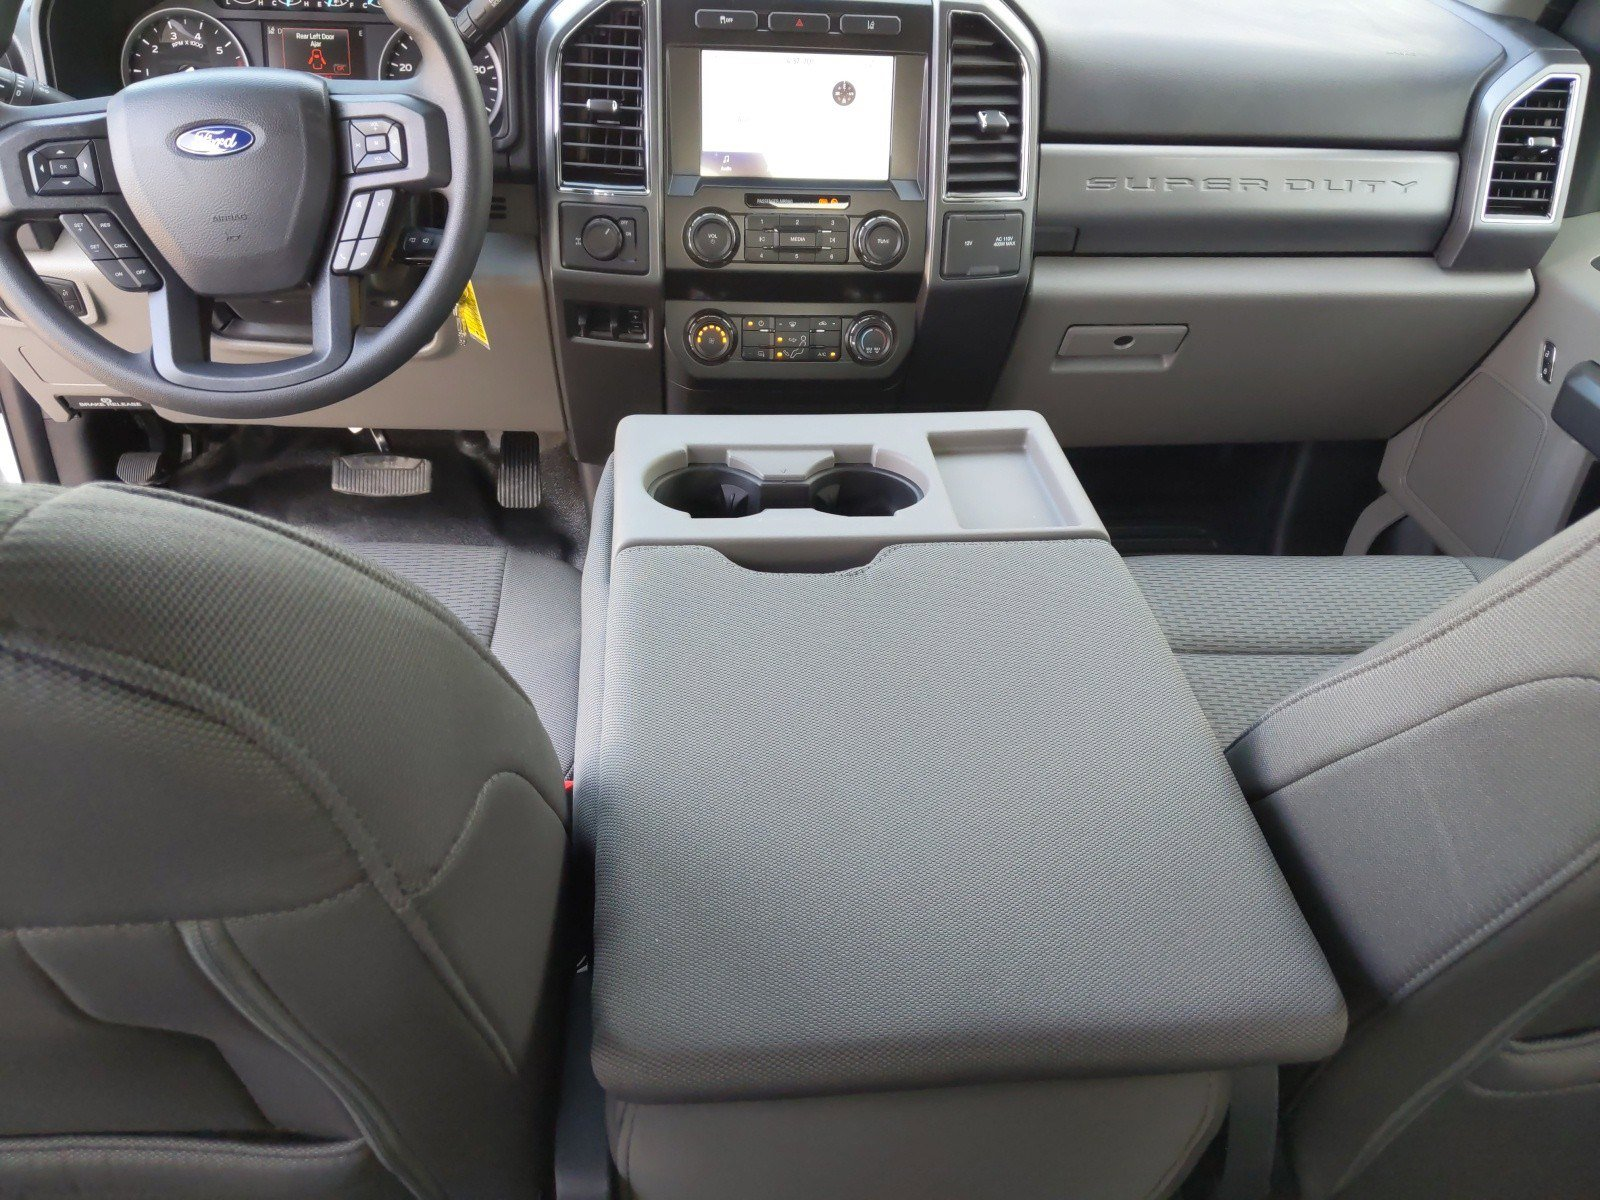 New 2020 Ford Super Duty F-250 SRW XLT Extended Cab Pickup for sale in Lincoln NE